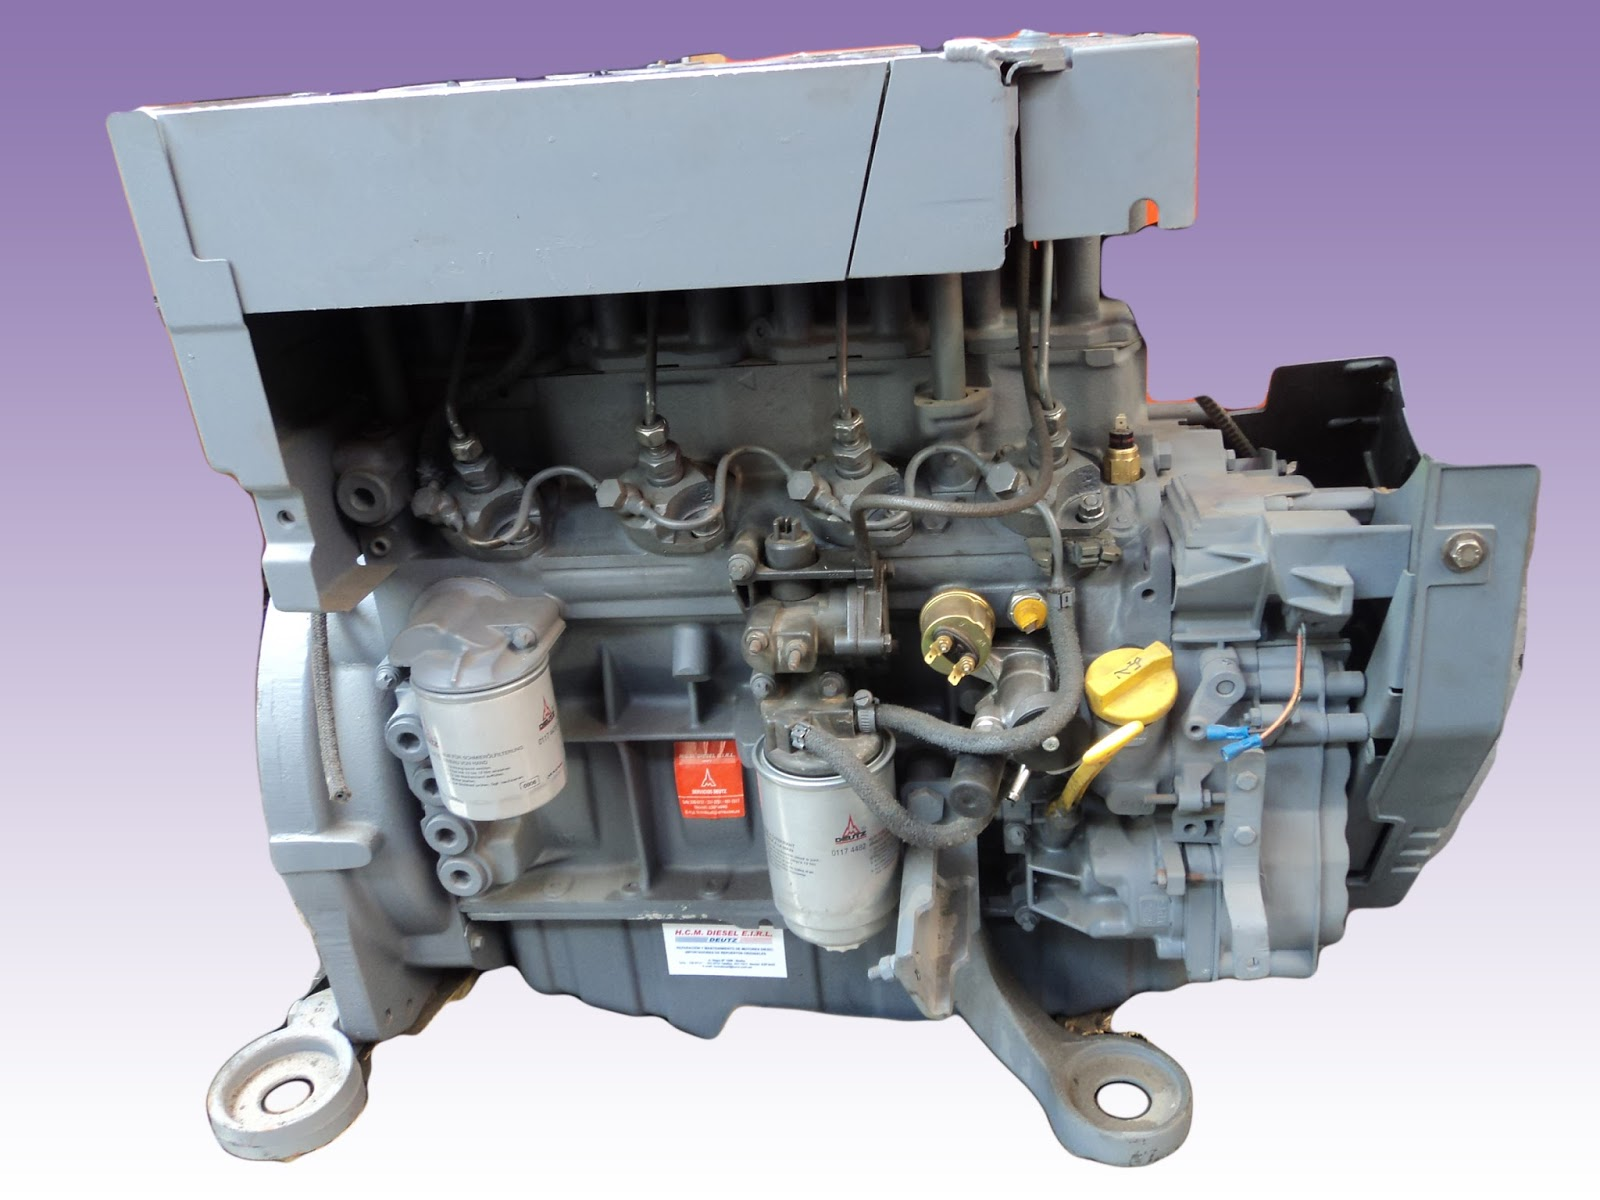 hight resolution of engine deutz workshop manual report deutz o m manual with this manual del it will show you how to distinguish any problem from an oil change to a